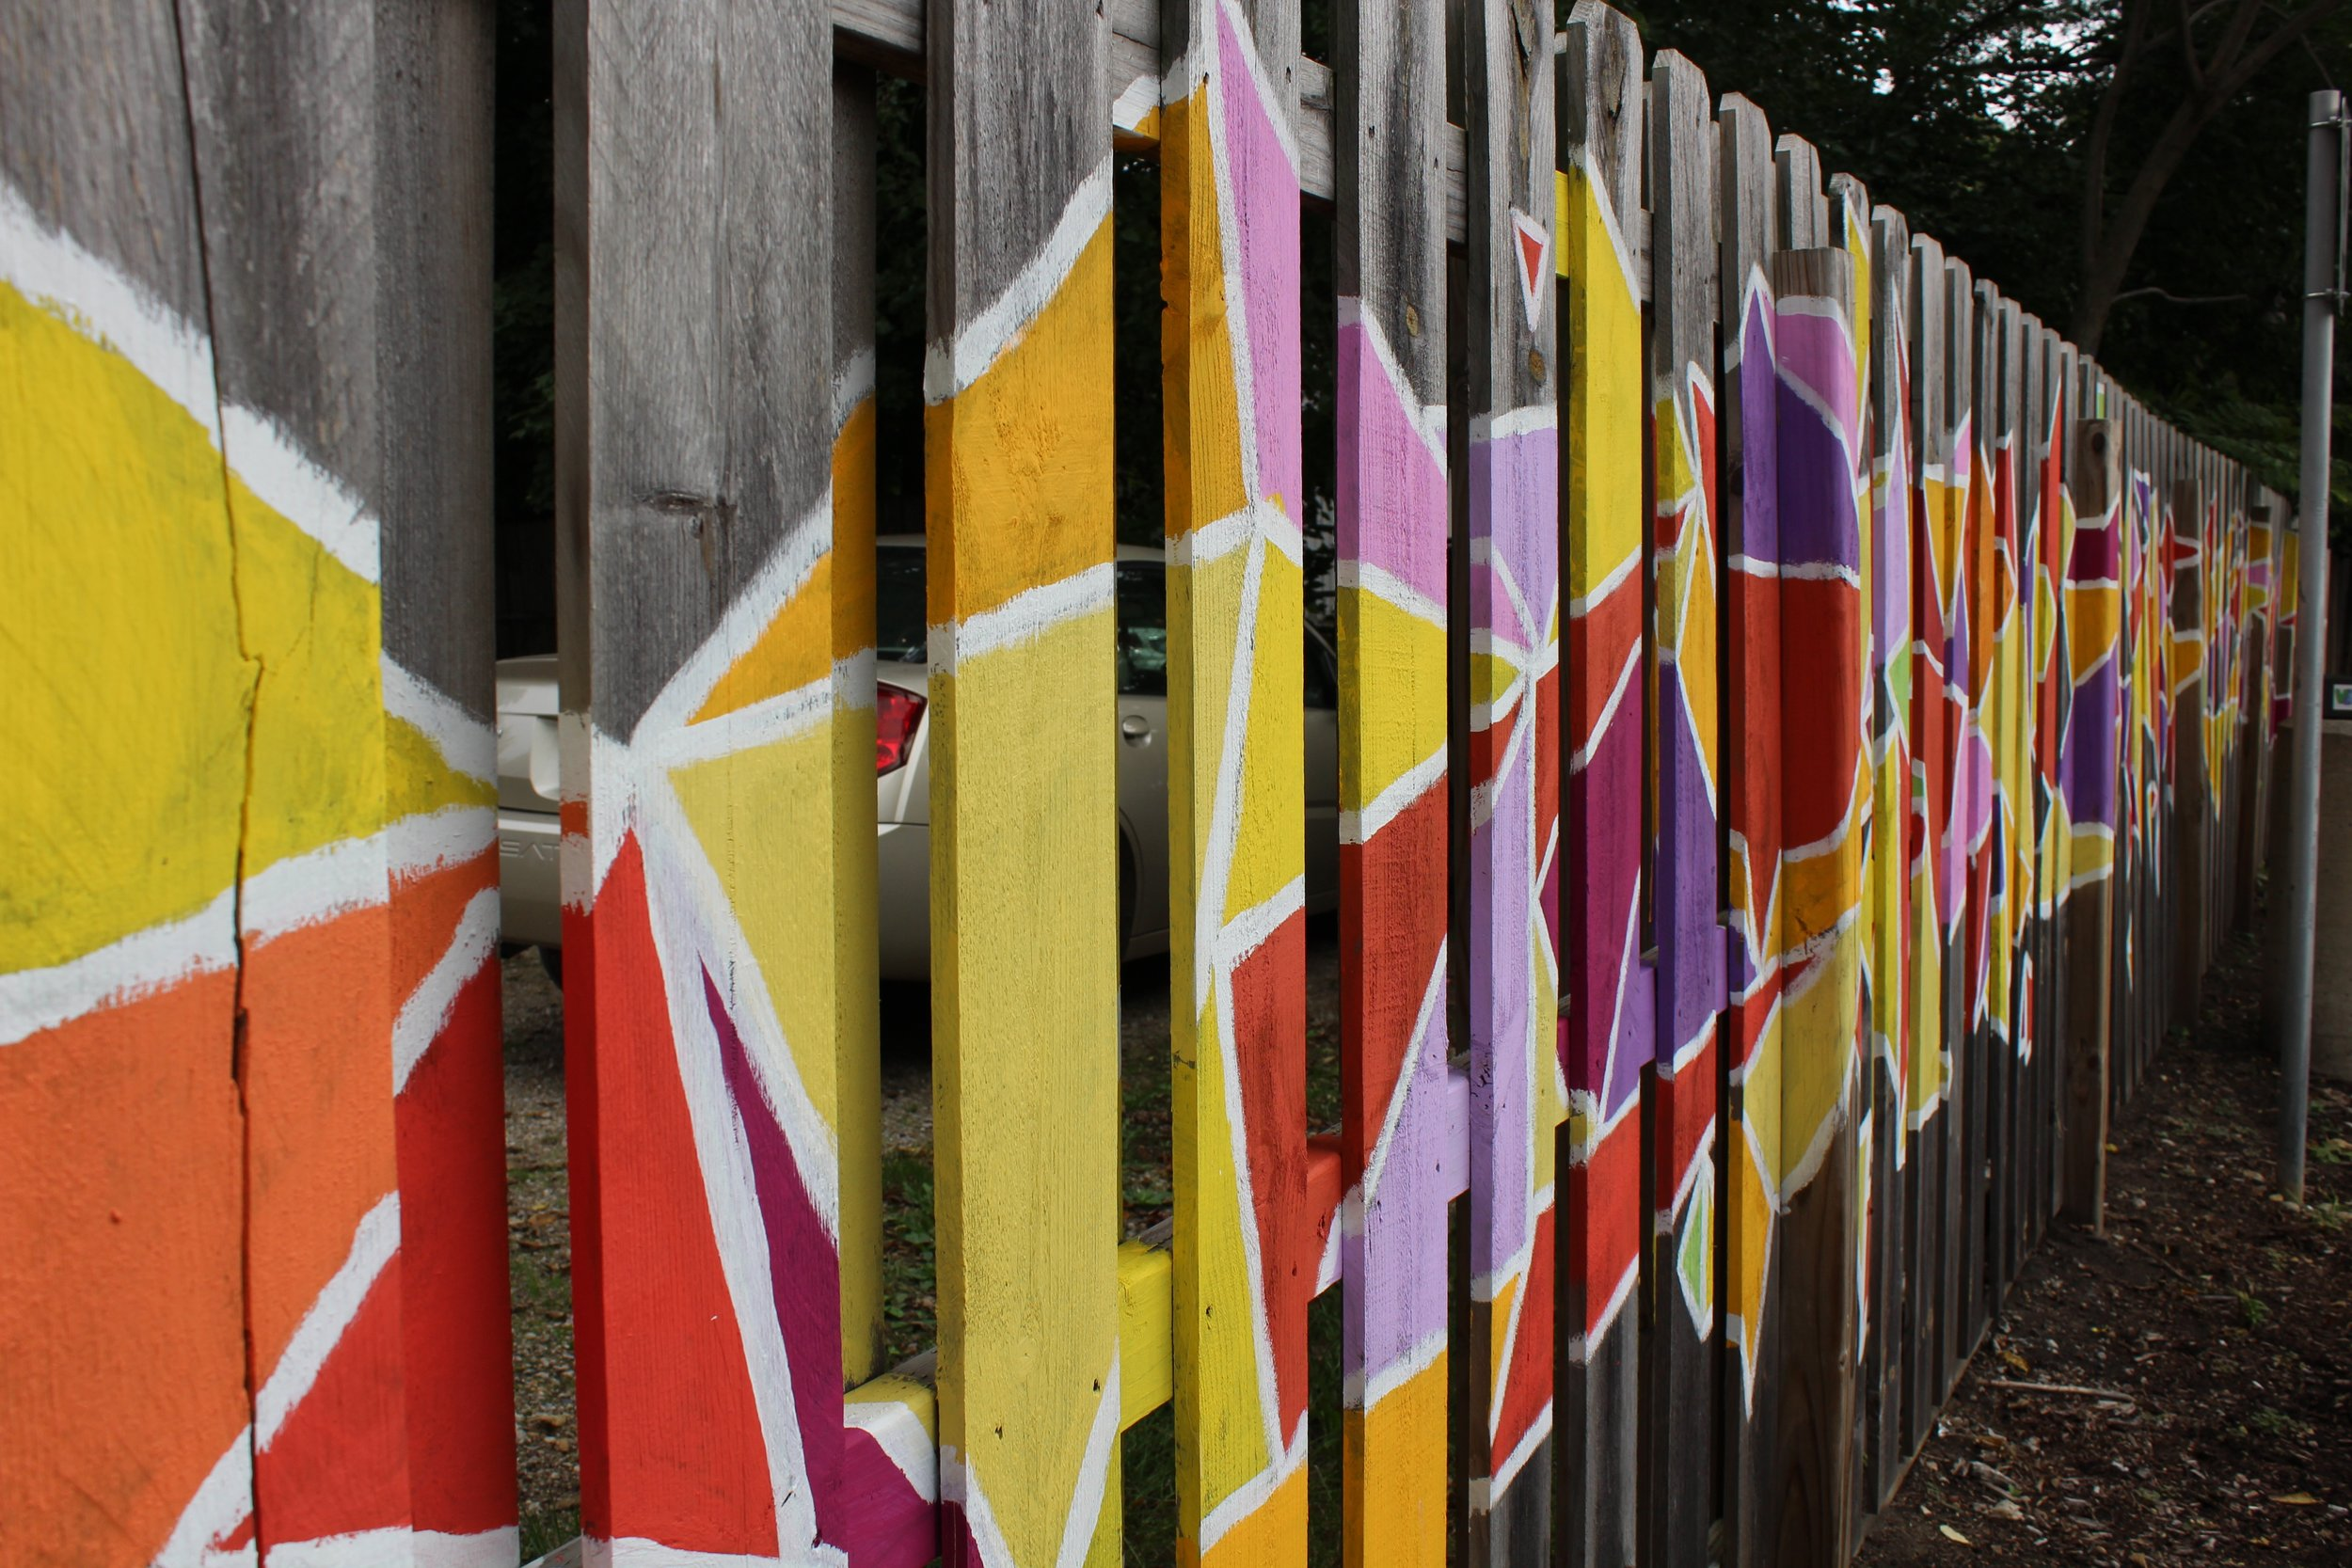 Geometric fence detail of mural